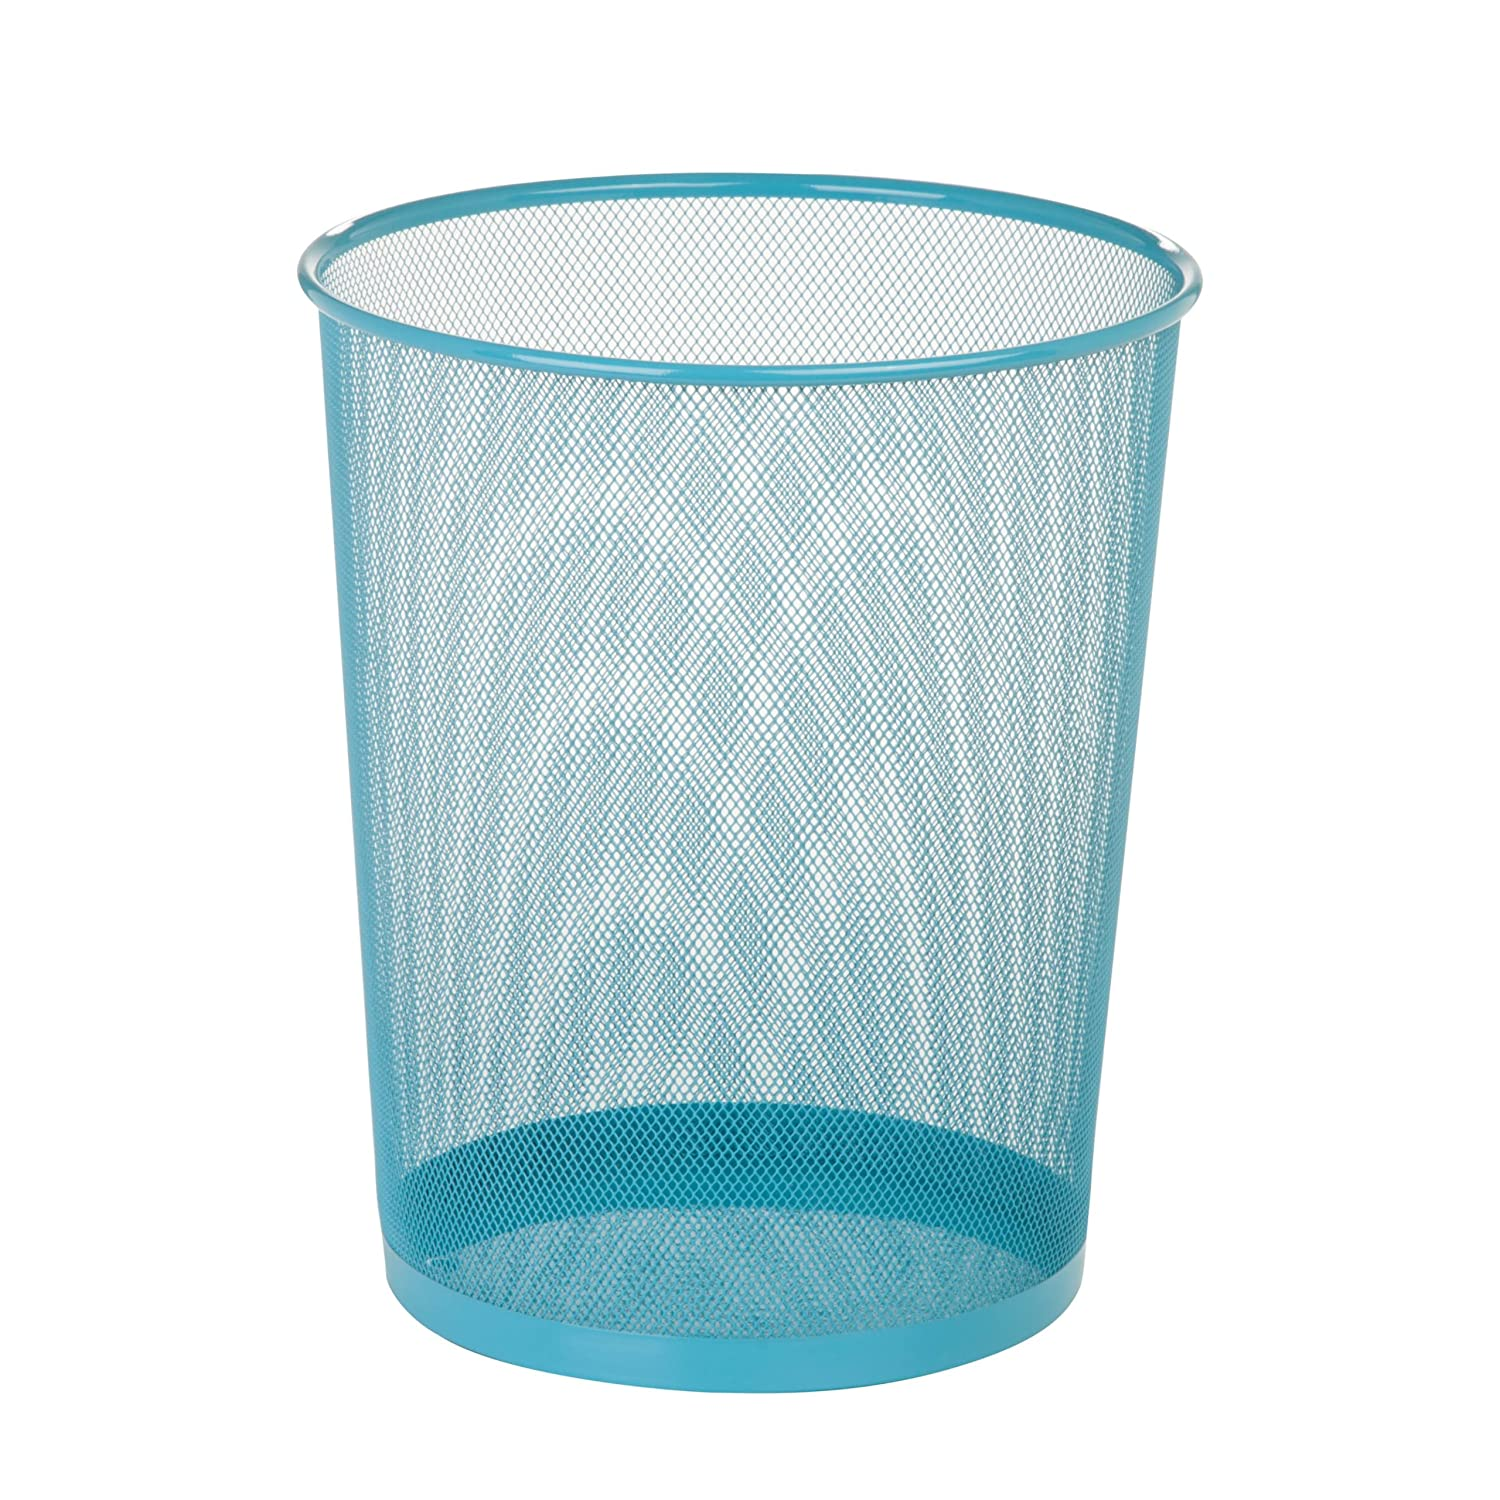 Amazon.com: Honey-Can-Do Steel Mesh Powder Coated Waste Basket ...